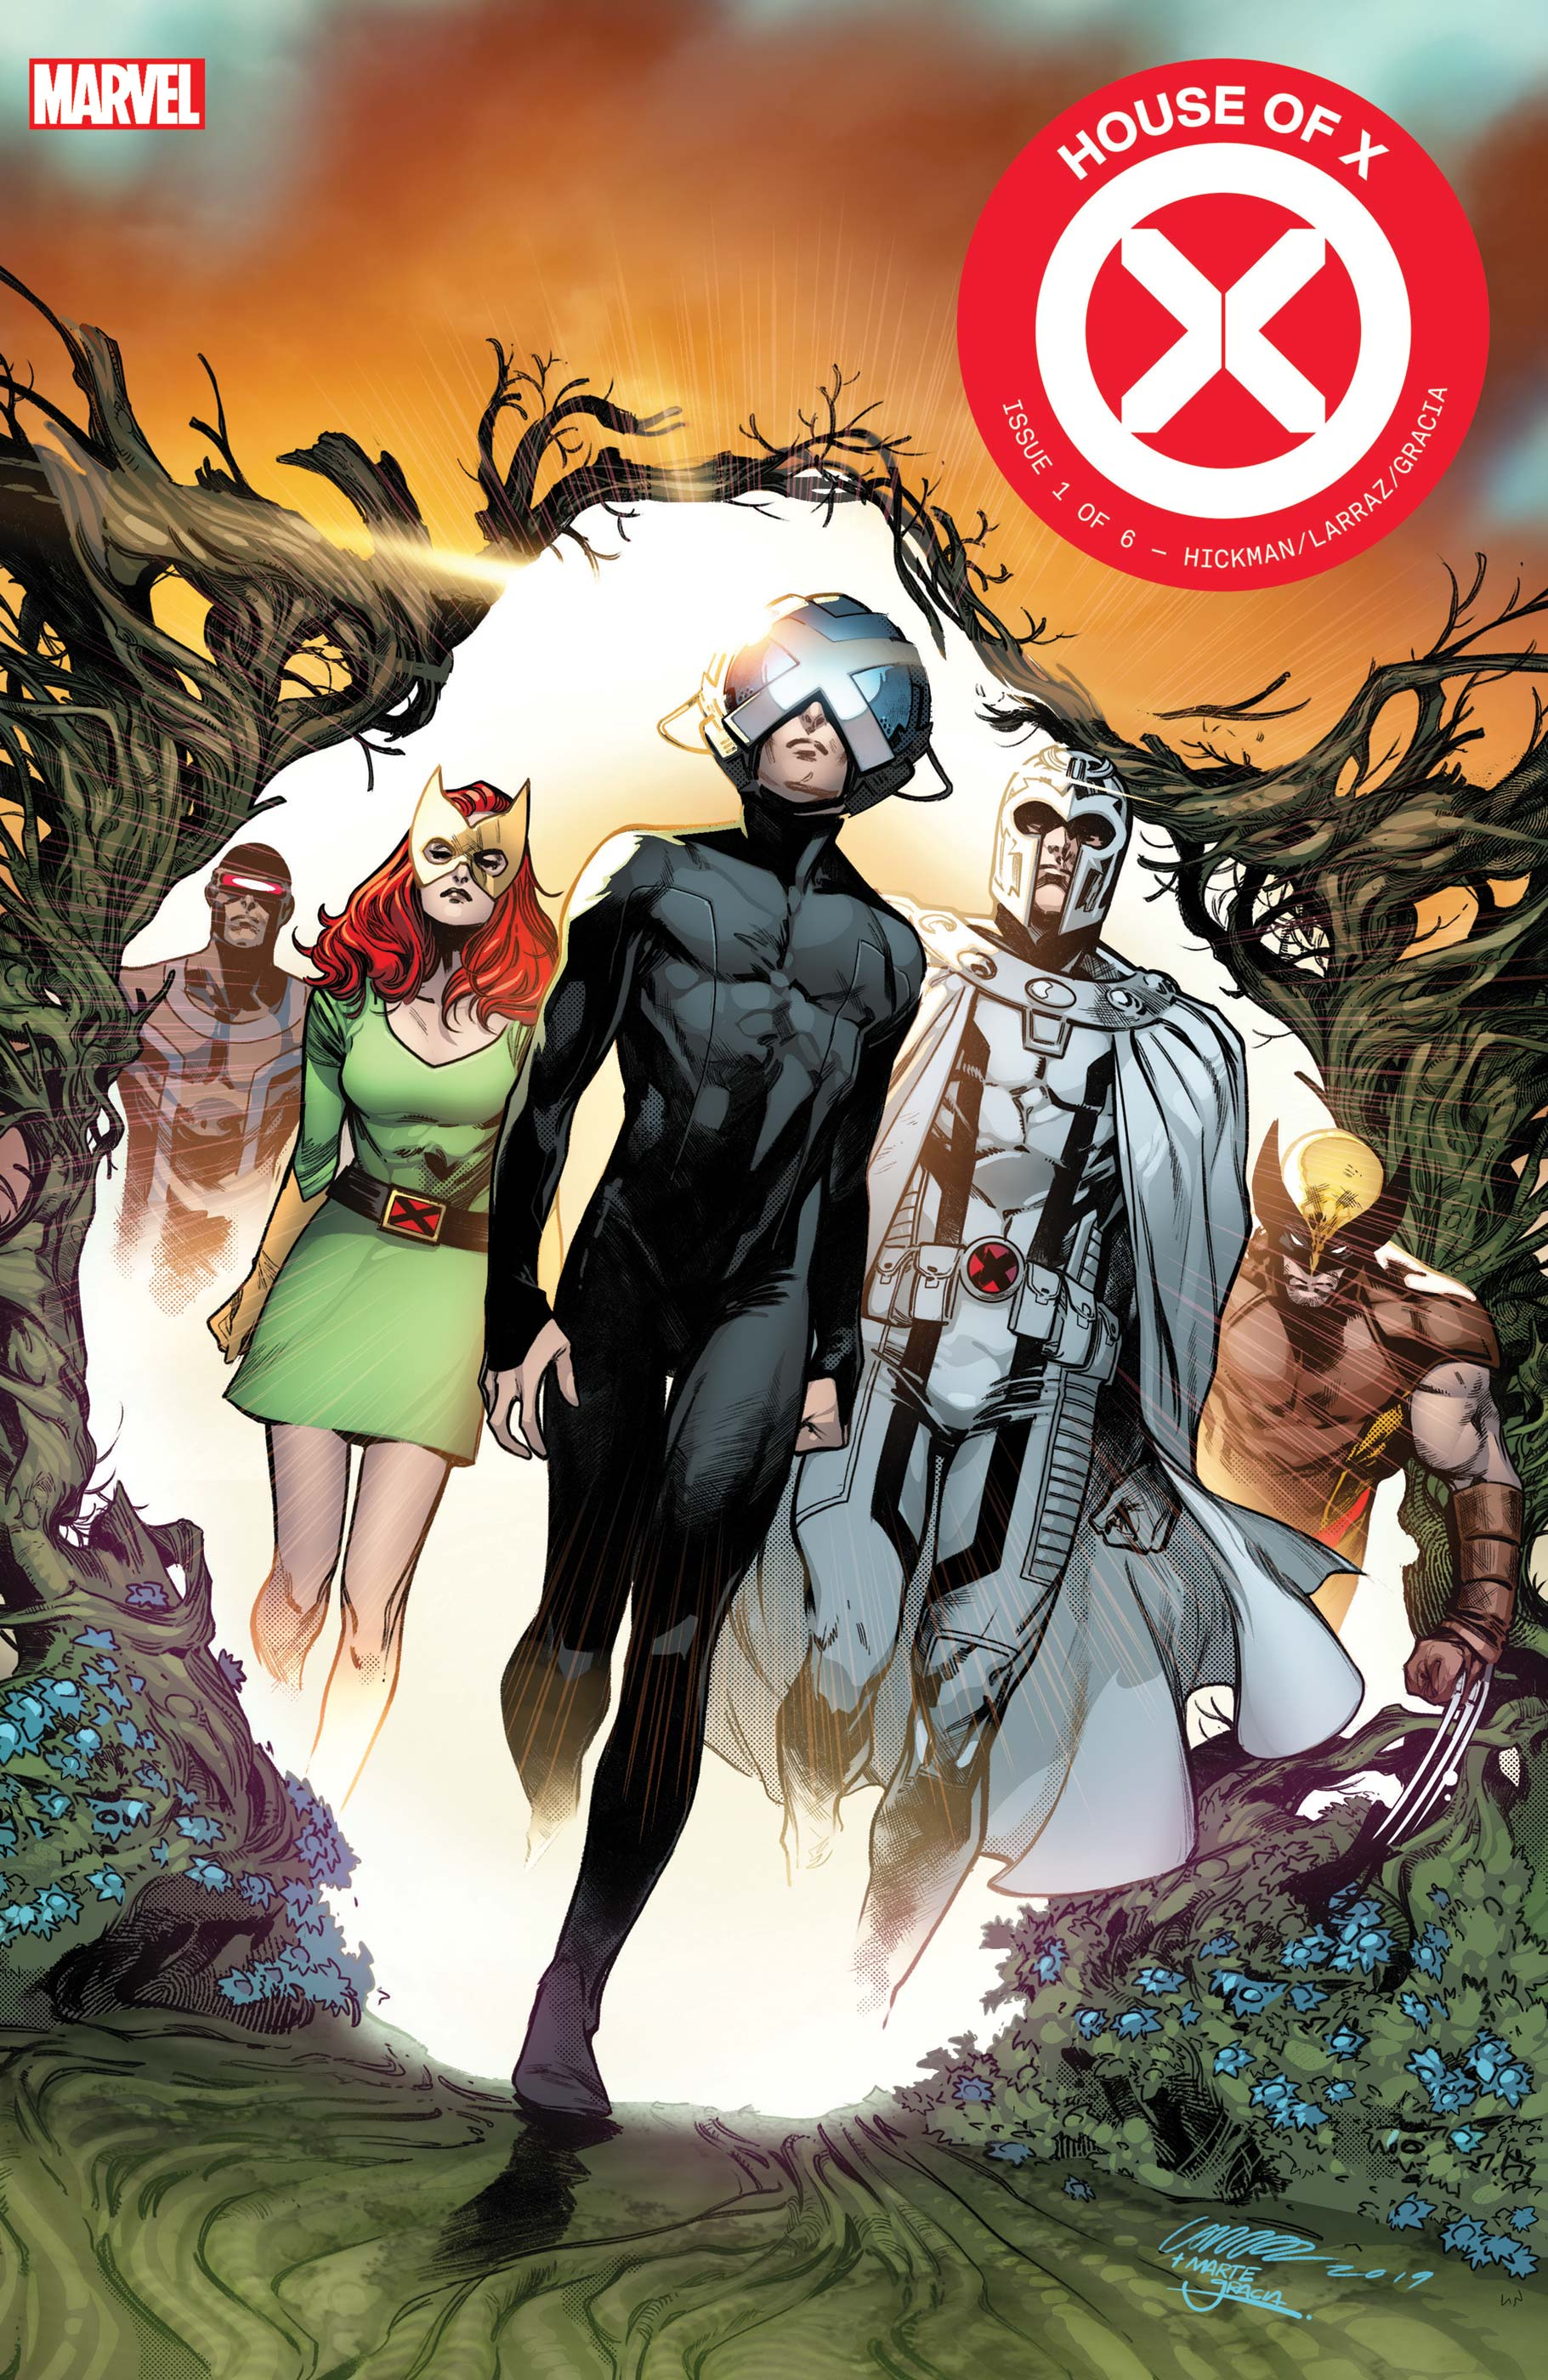 House of X (2019) #1